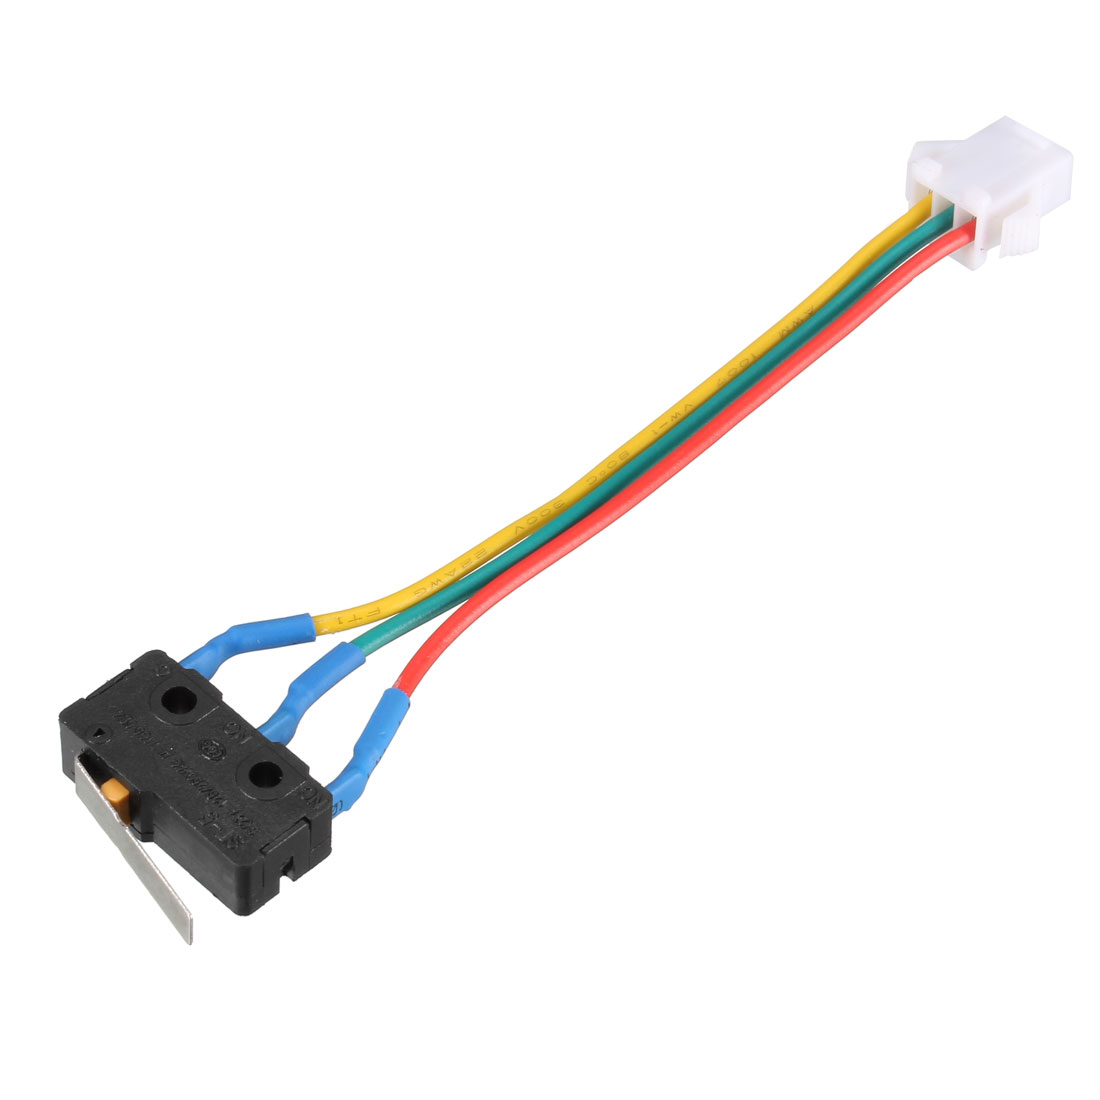 AC 250V 125A Control Ignition Momentary Gas Water Heater Micro Switches